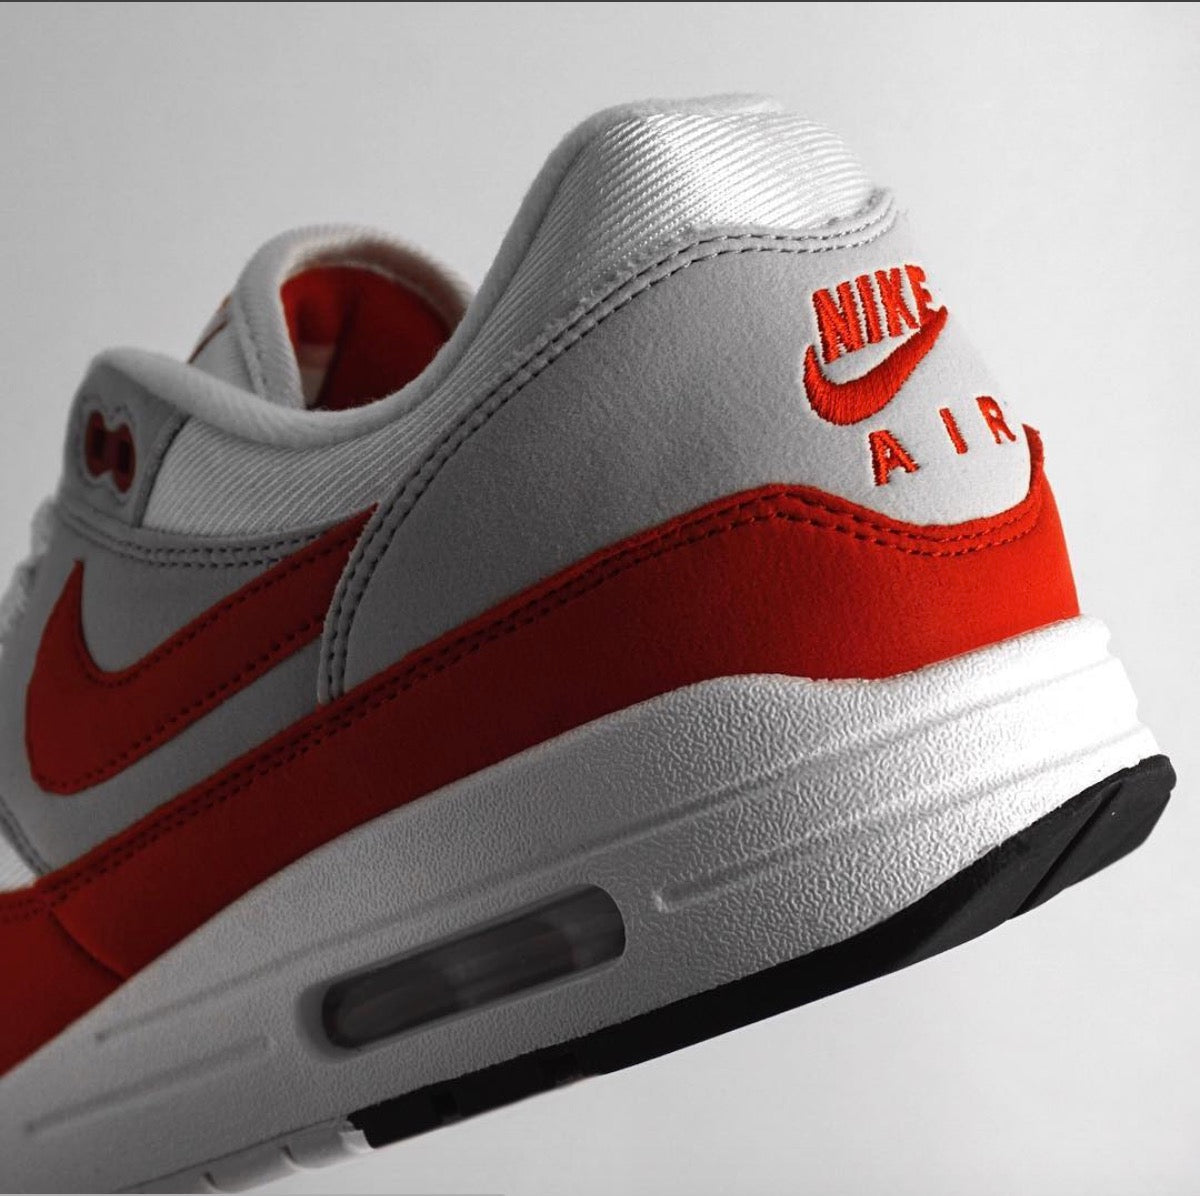 "NIKE AIR MAX 1 ""UNIVERSITY RED"" ANNIVERSARY (2018 RESTOCK) AVAILABLE NOW"